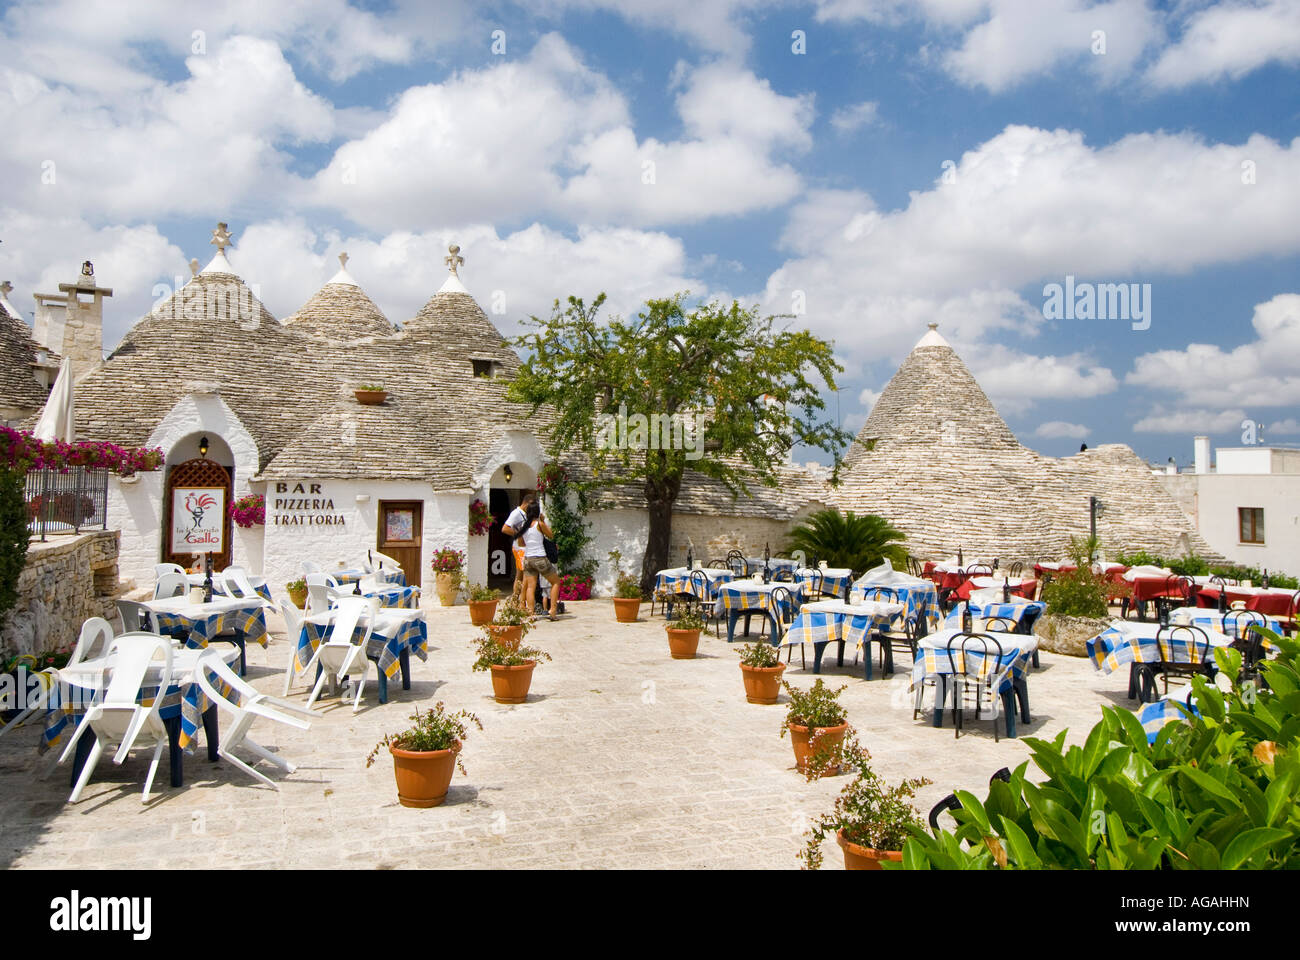 Ristoranti Alberobello Restaurant Alberobello Puglia Italy Stock Photo 14149280 Alamy